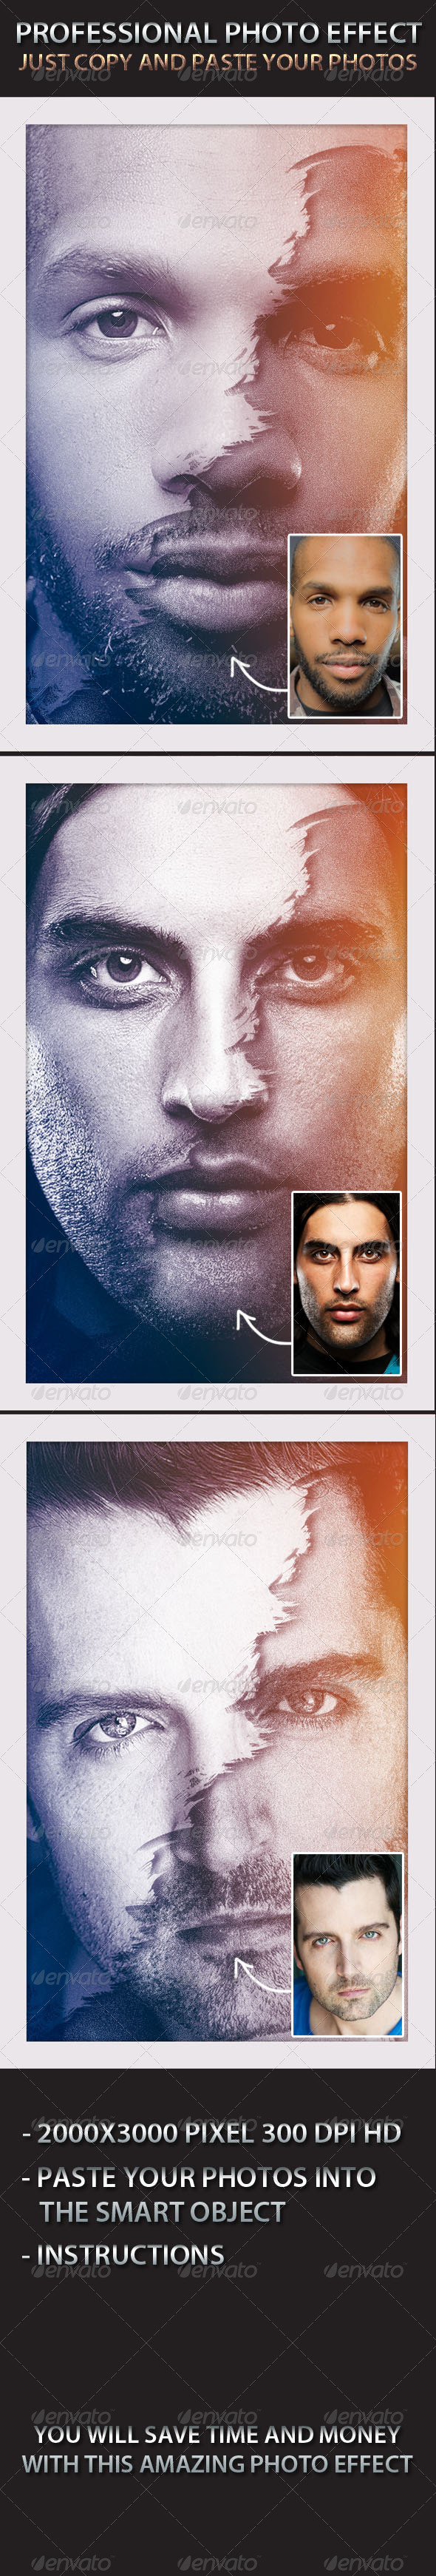 GraphicRiver Photo Effect Photo Template 5198552